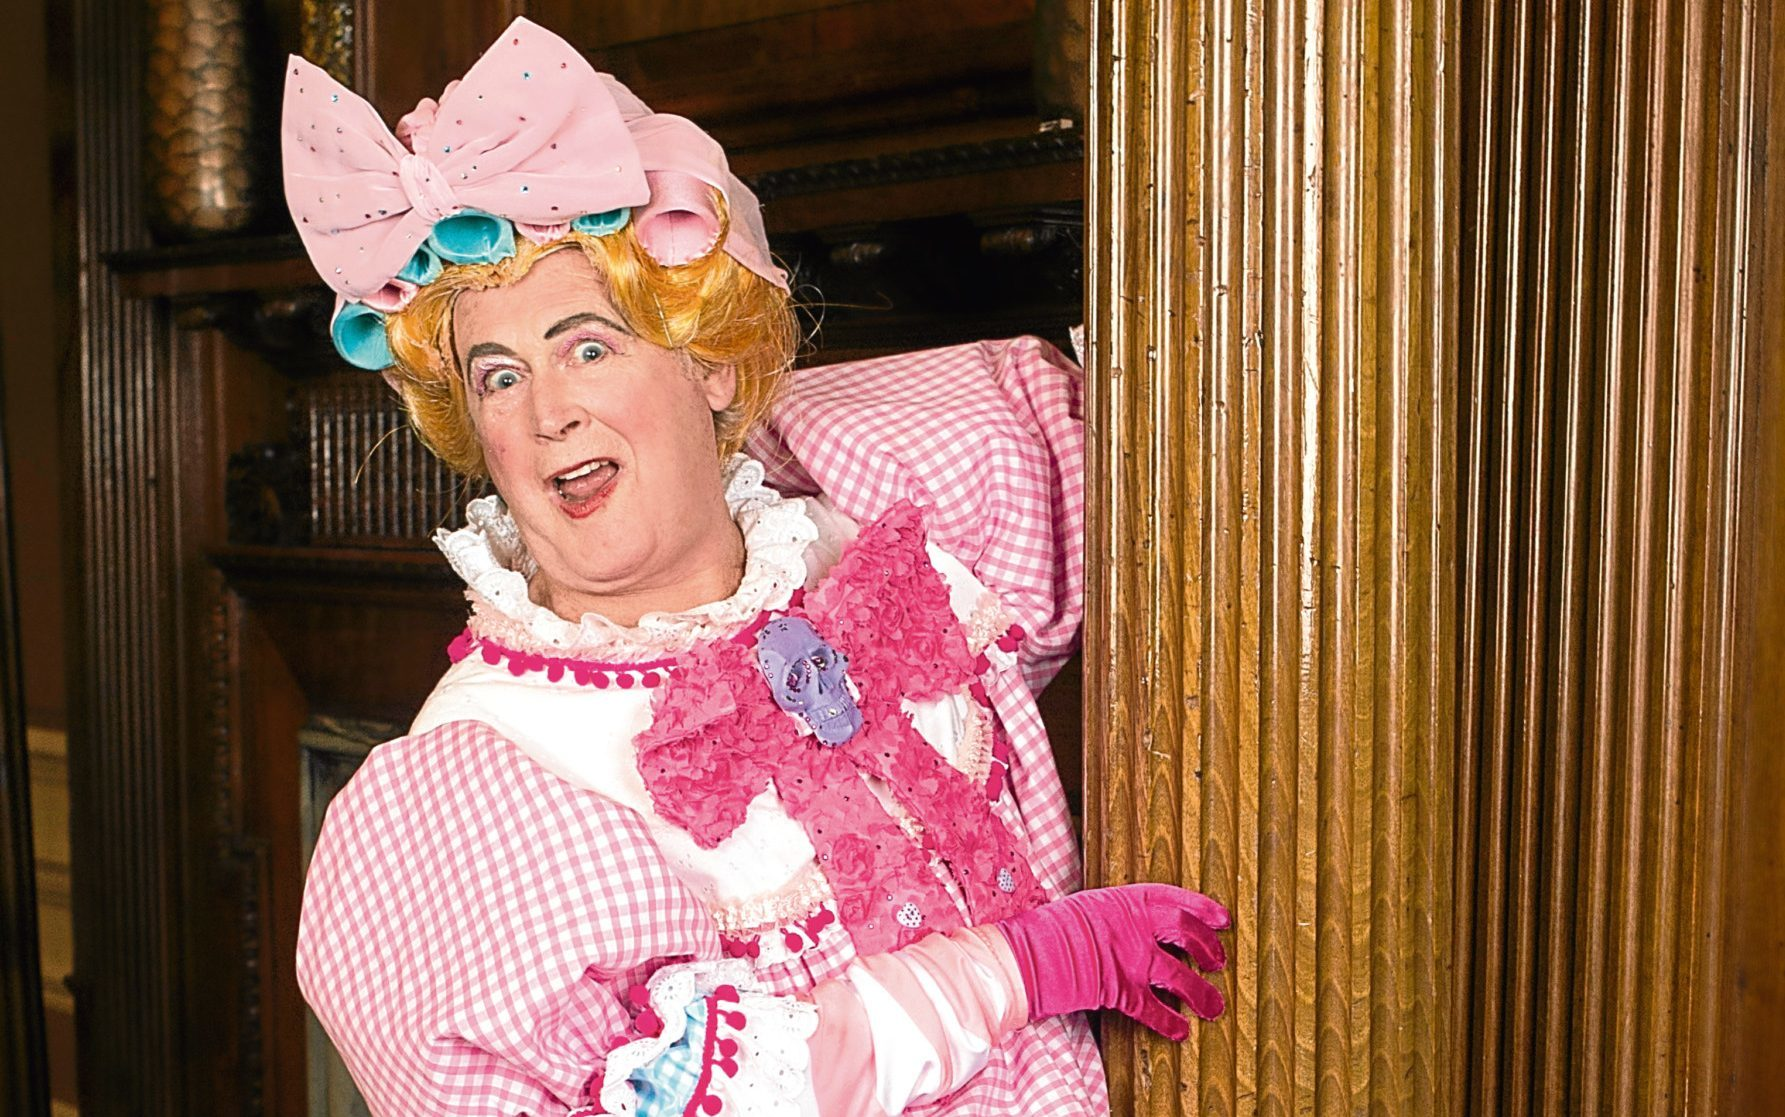 Tony Roper plays one of the ugly step-sisters (John Kirkby)